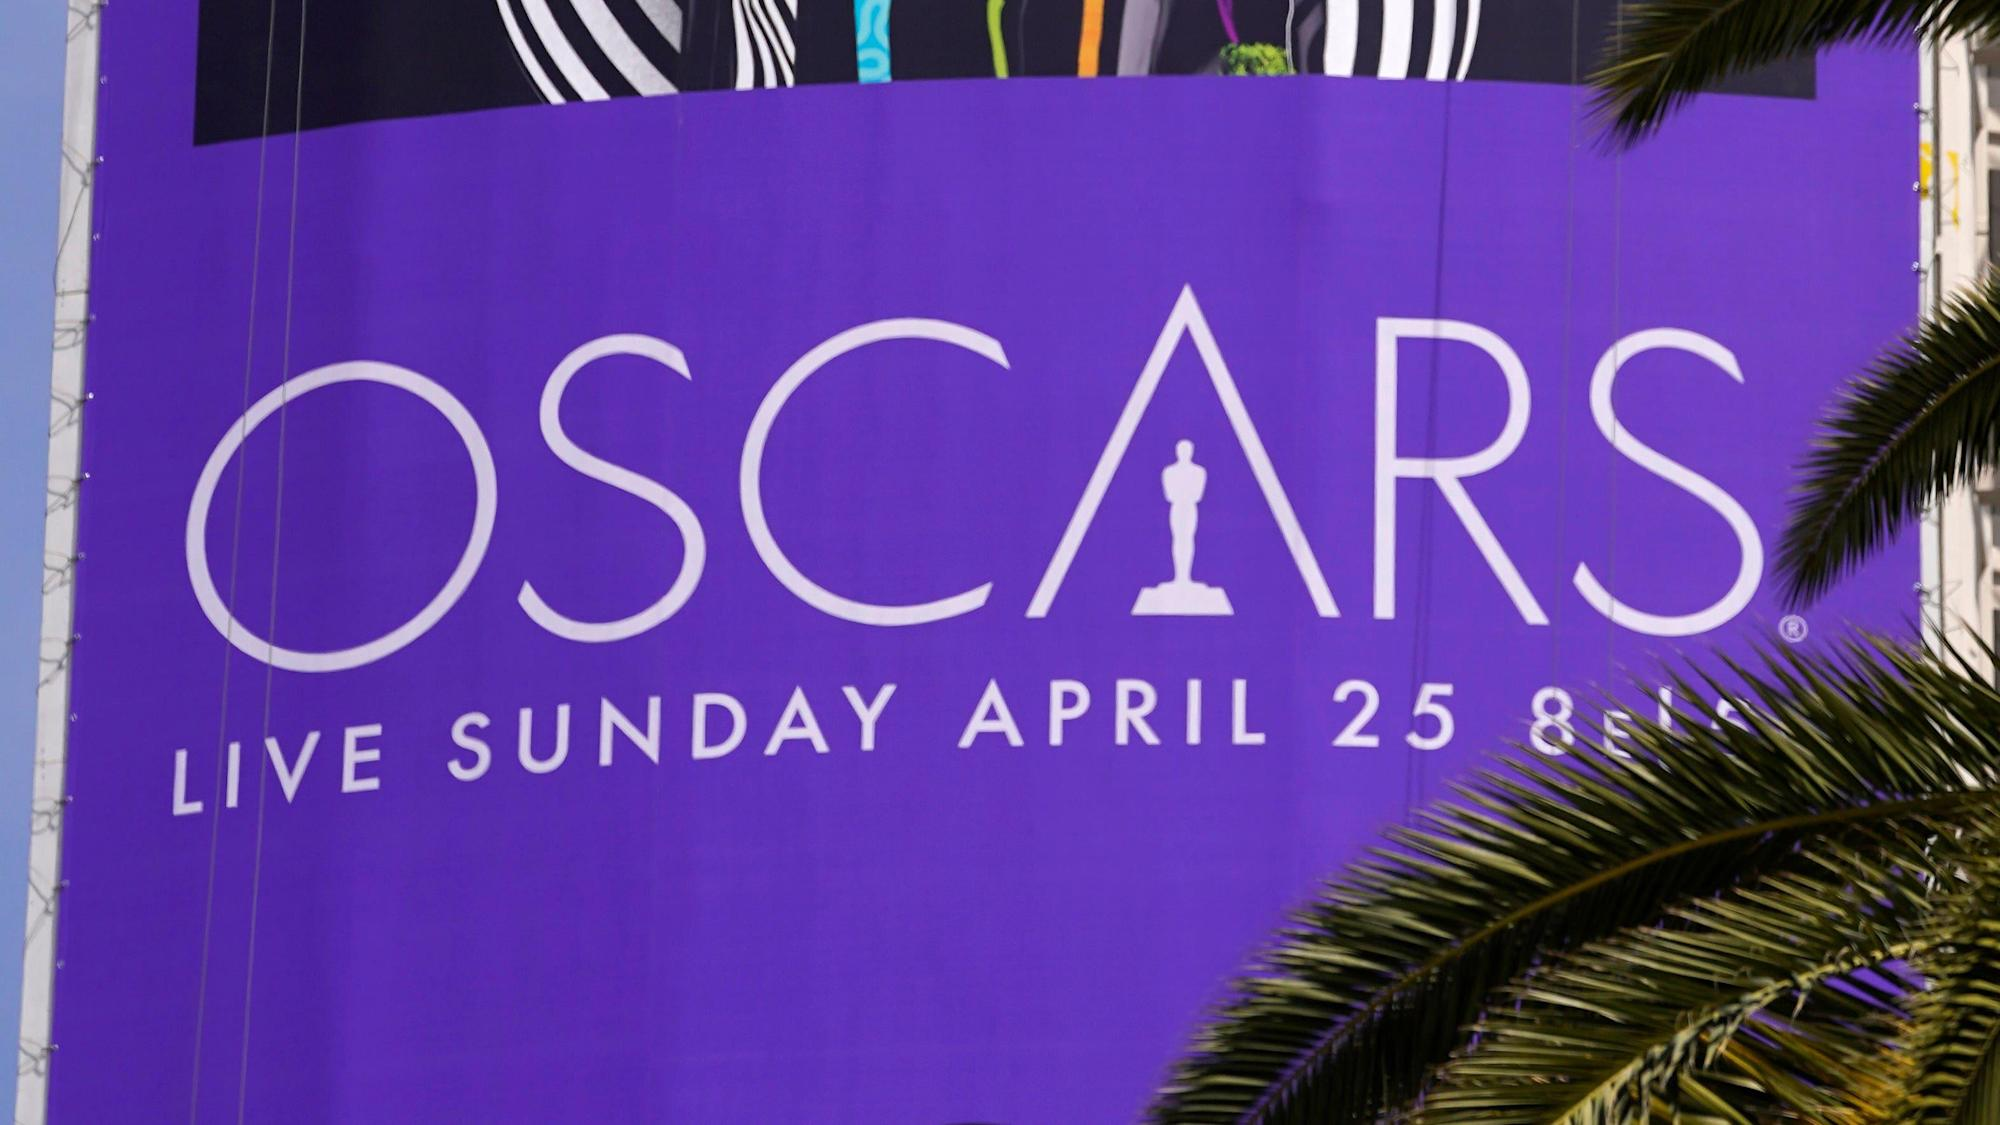 Oscars attendees 'told they do not have to wear masks on camera'